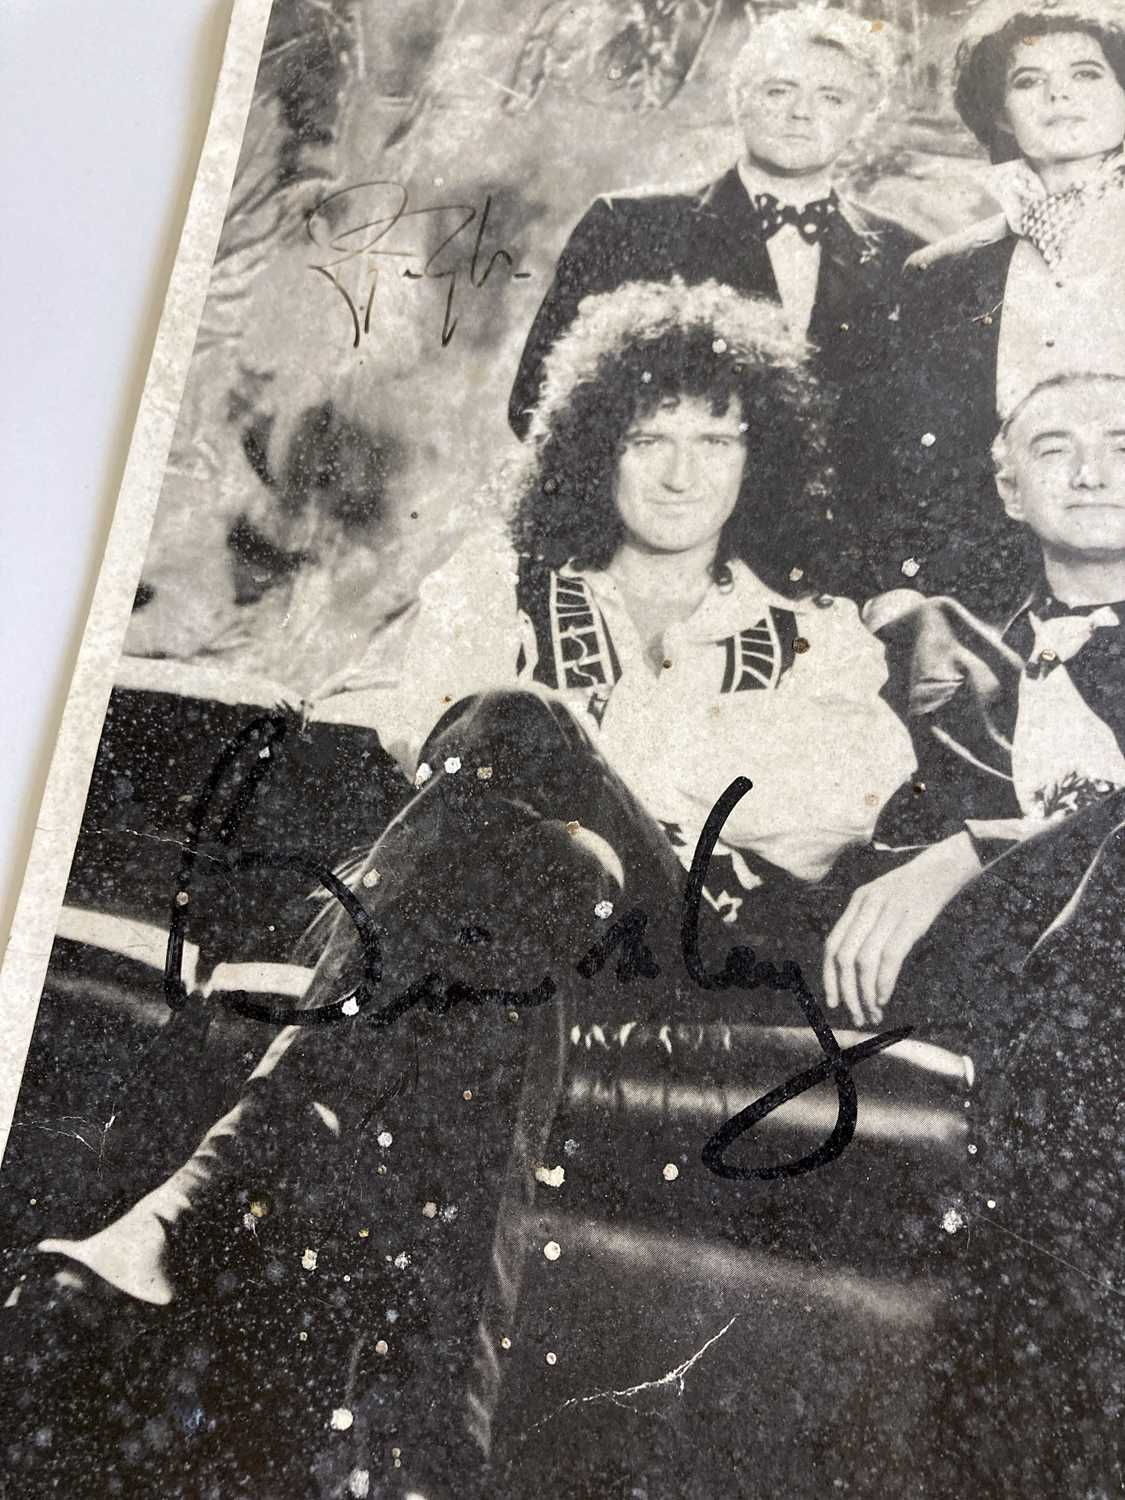 QUEEN SIGNED ITEMS. - Image 5 of 7